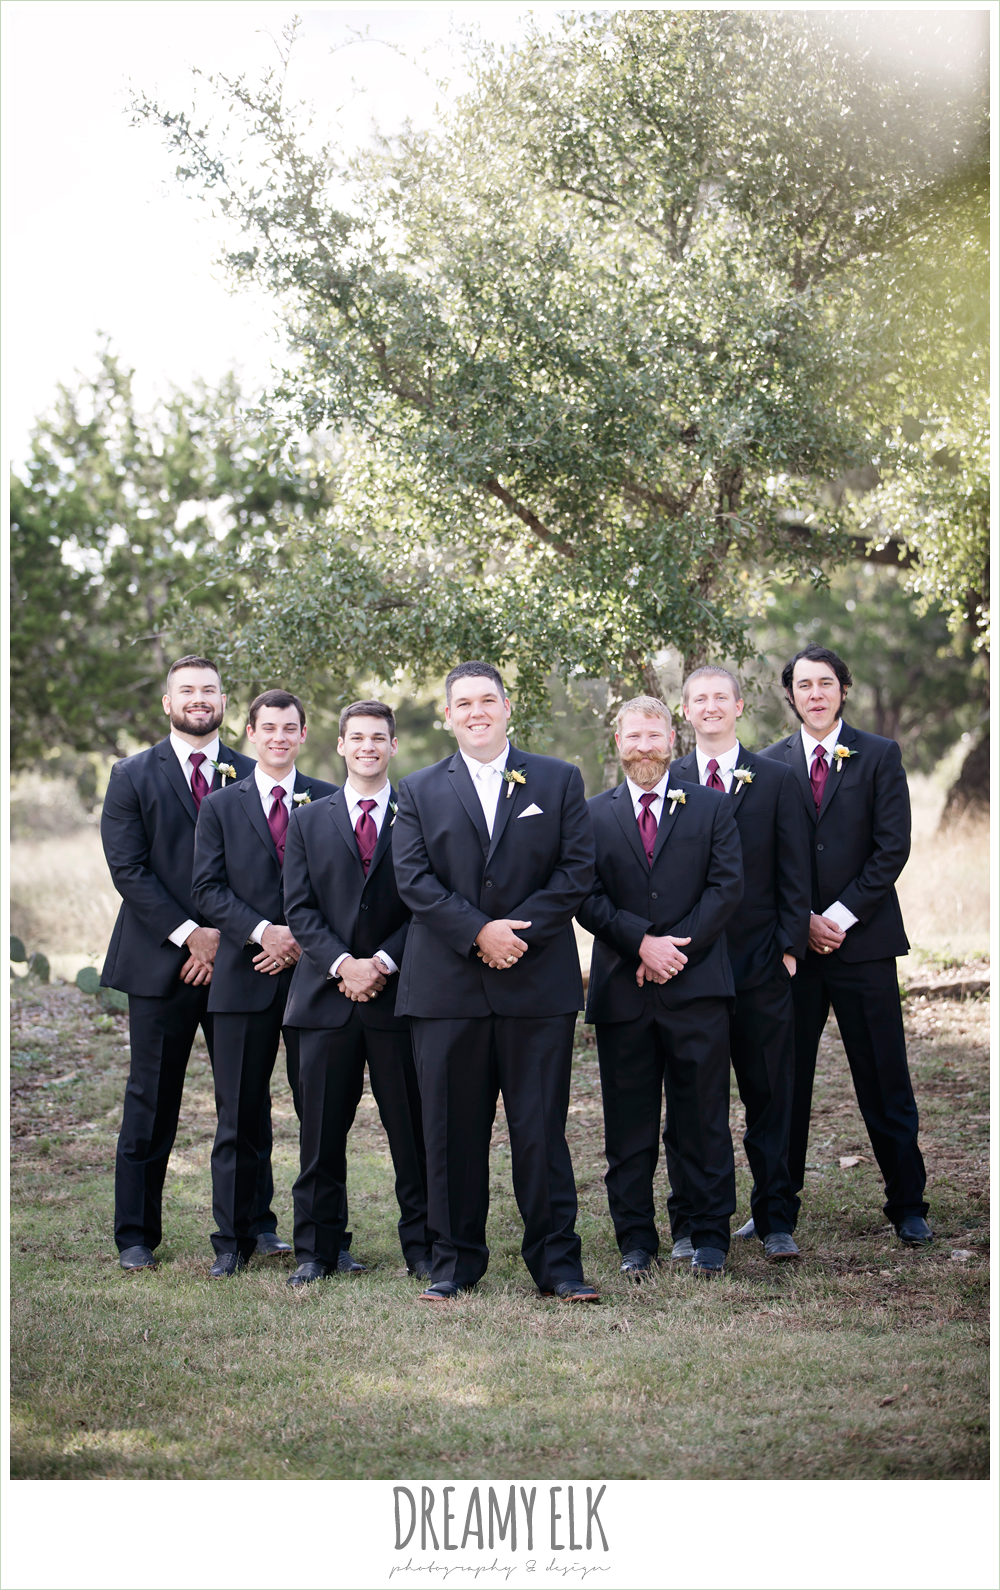 men's wearhouse, maroon and gold fall wedding photo, la hacienda, dripping springs, texas {dreamy elk photography and design}